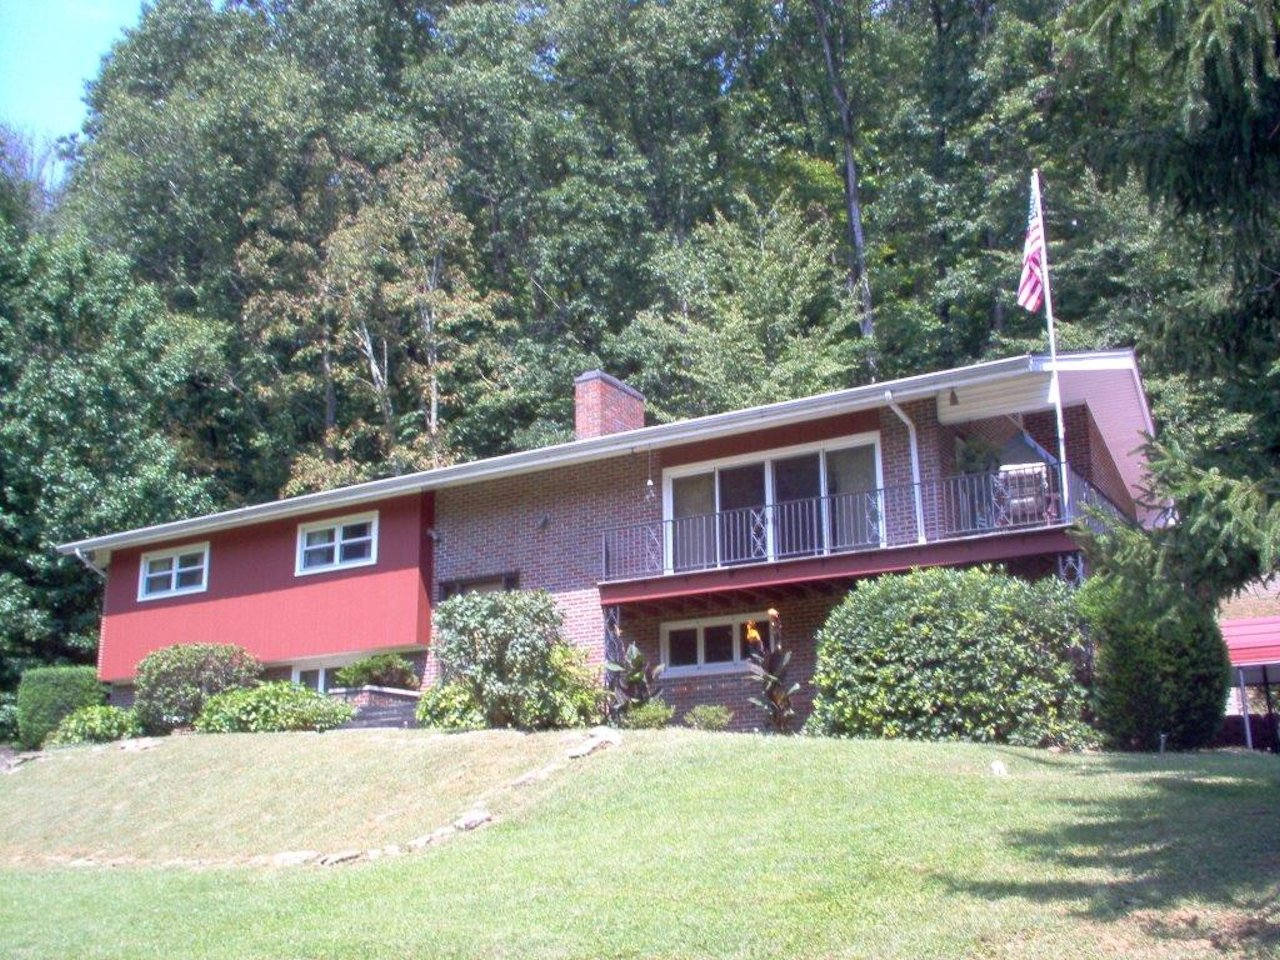 101 Lakeview Lane (Happy Hollow), Ironton, Ohio 45638